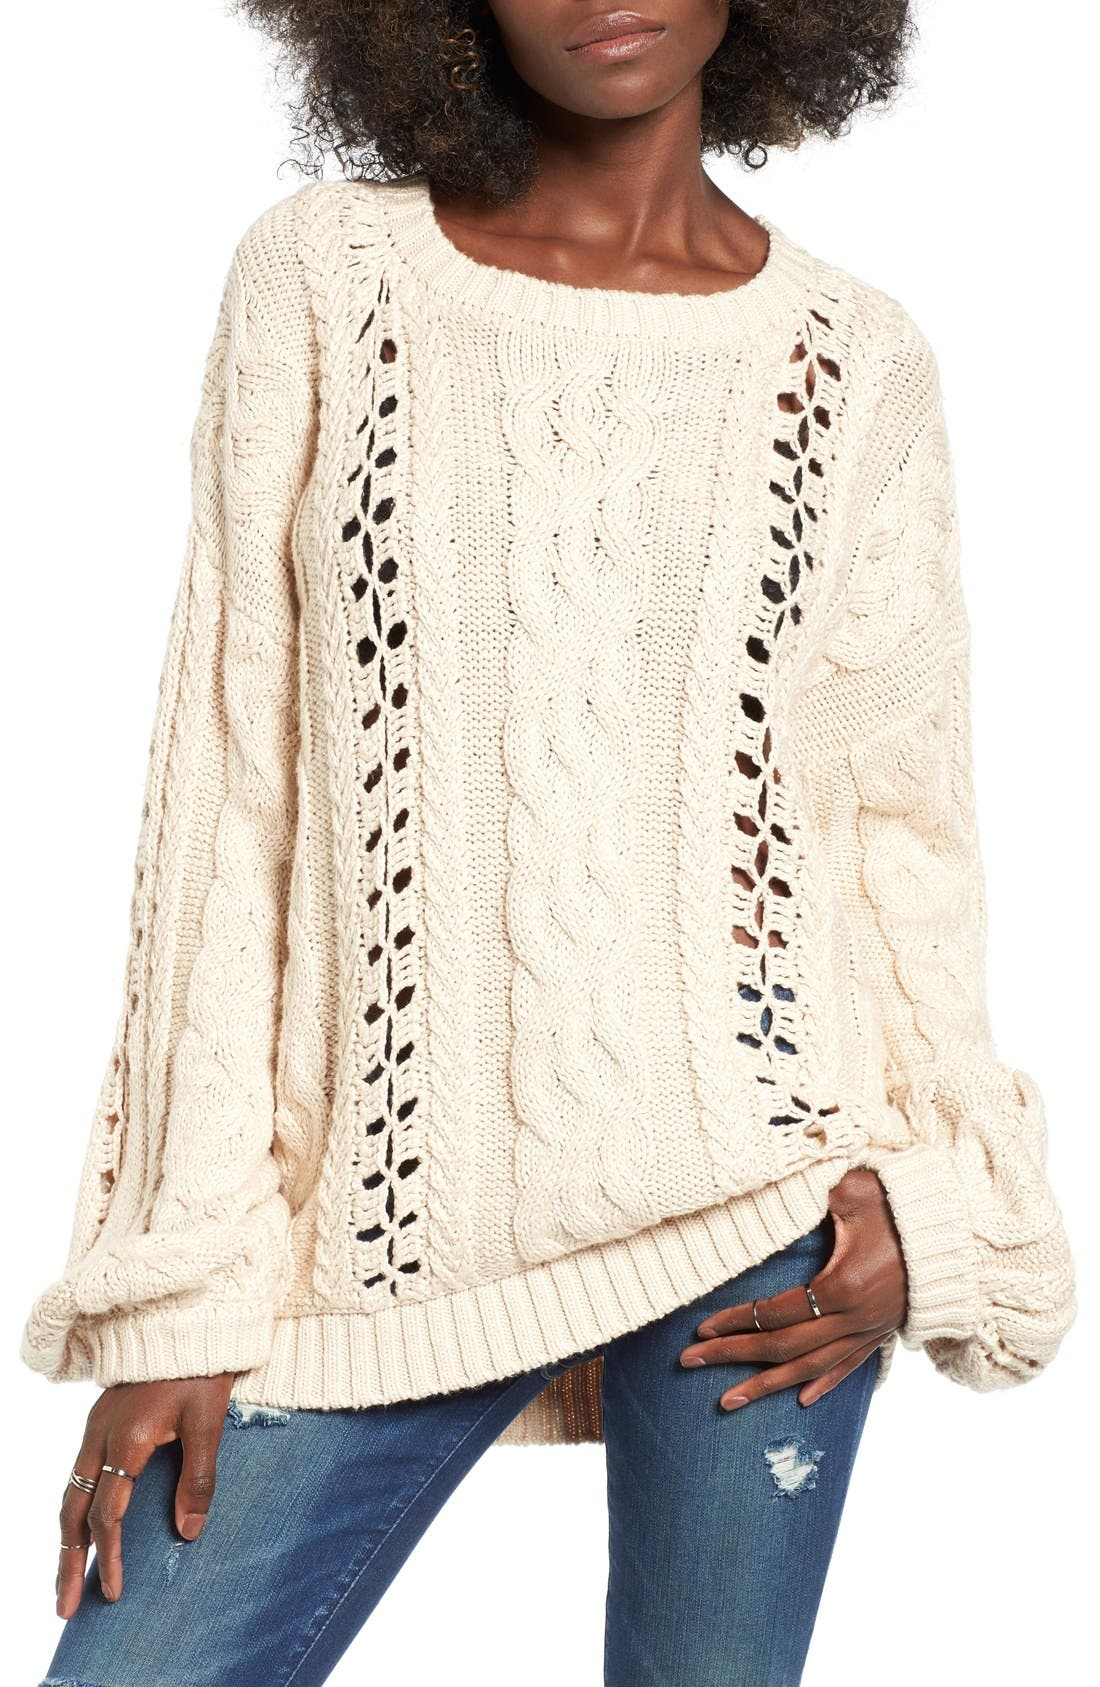 Main Image - For Love & Lemons Wythe Cable Knit Sweater